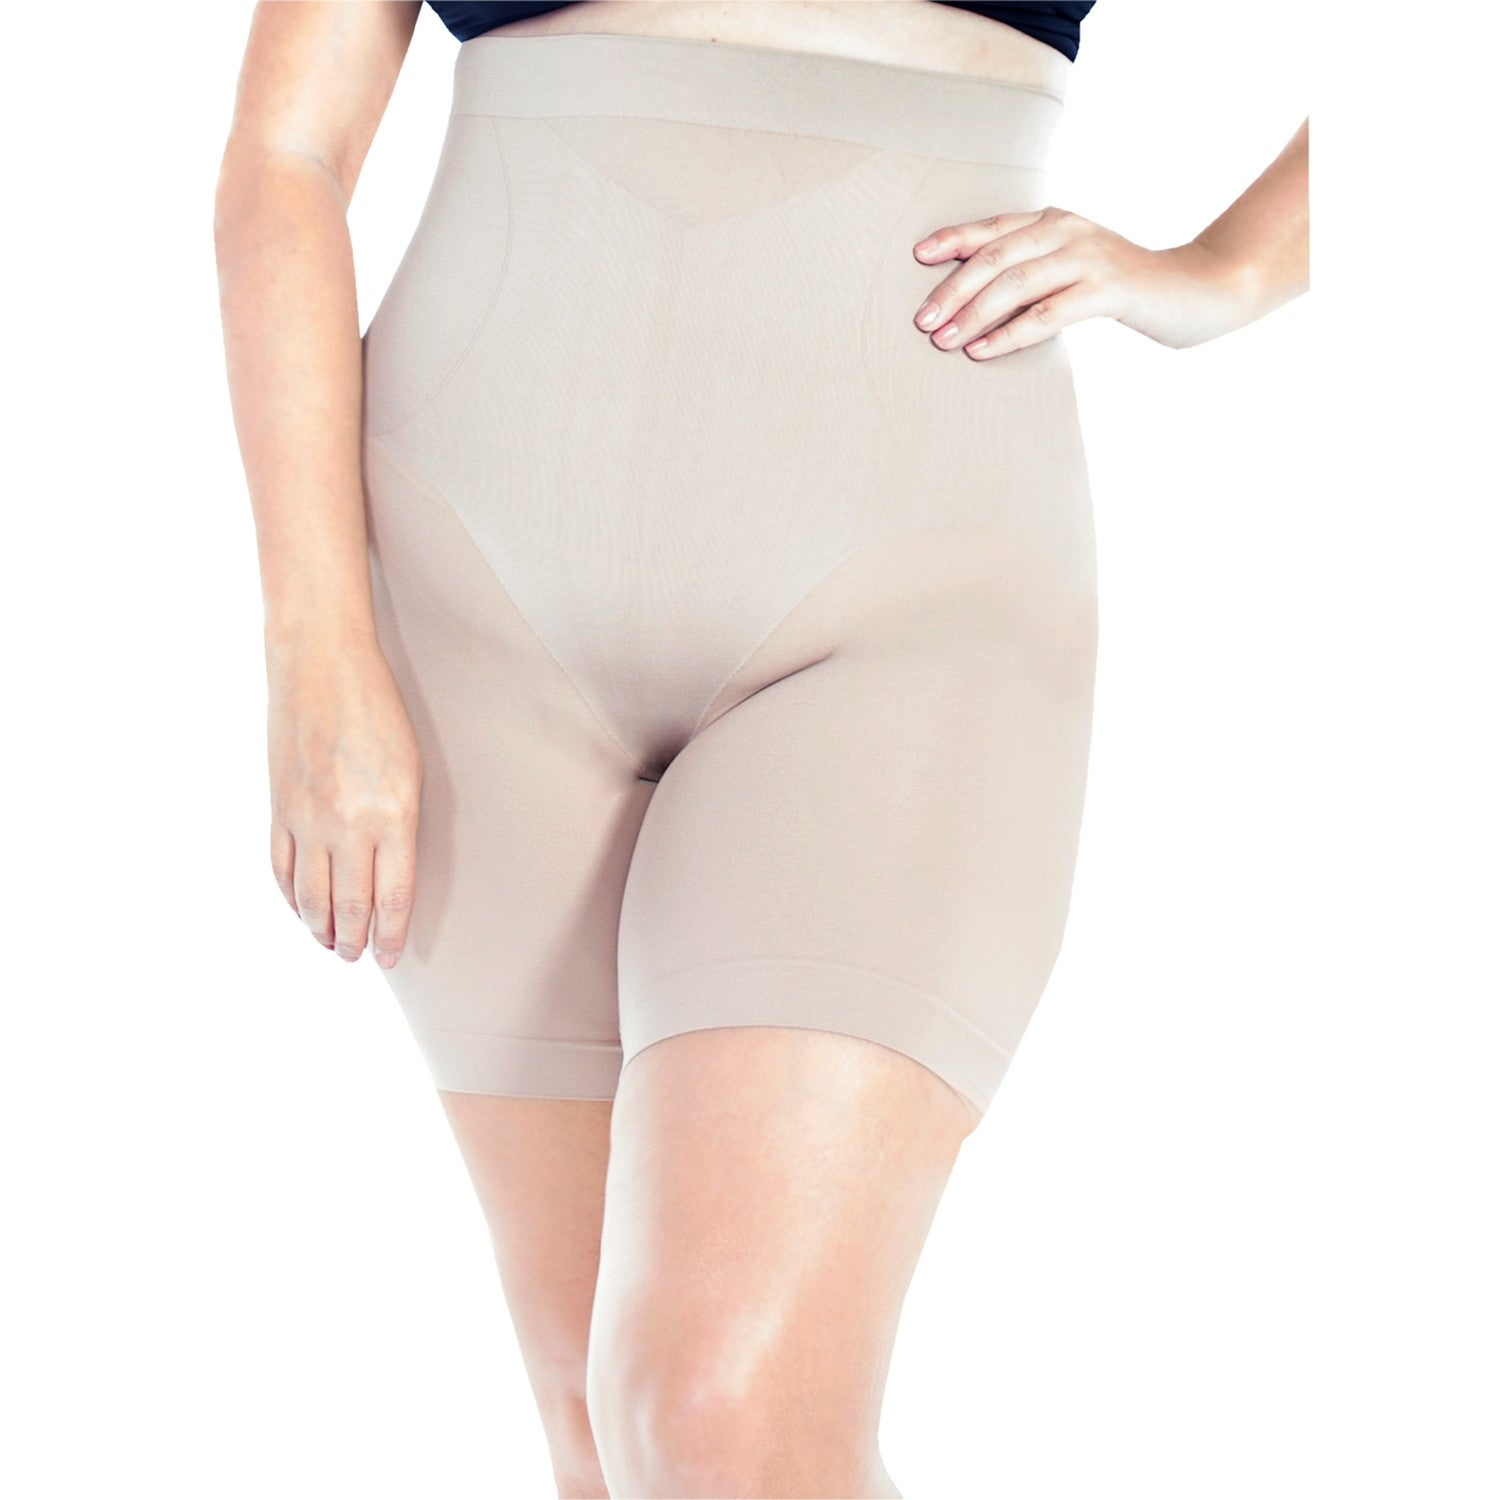 509ff175495f3b Buy Size 3X Shapewear Online at Overstock | Our Best Intimates Deals